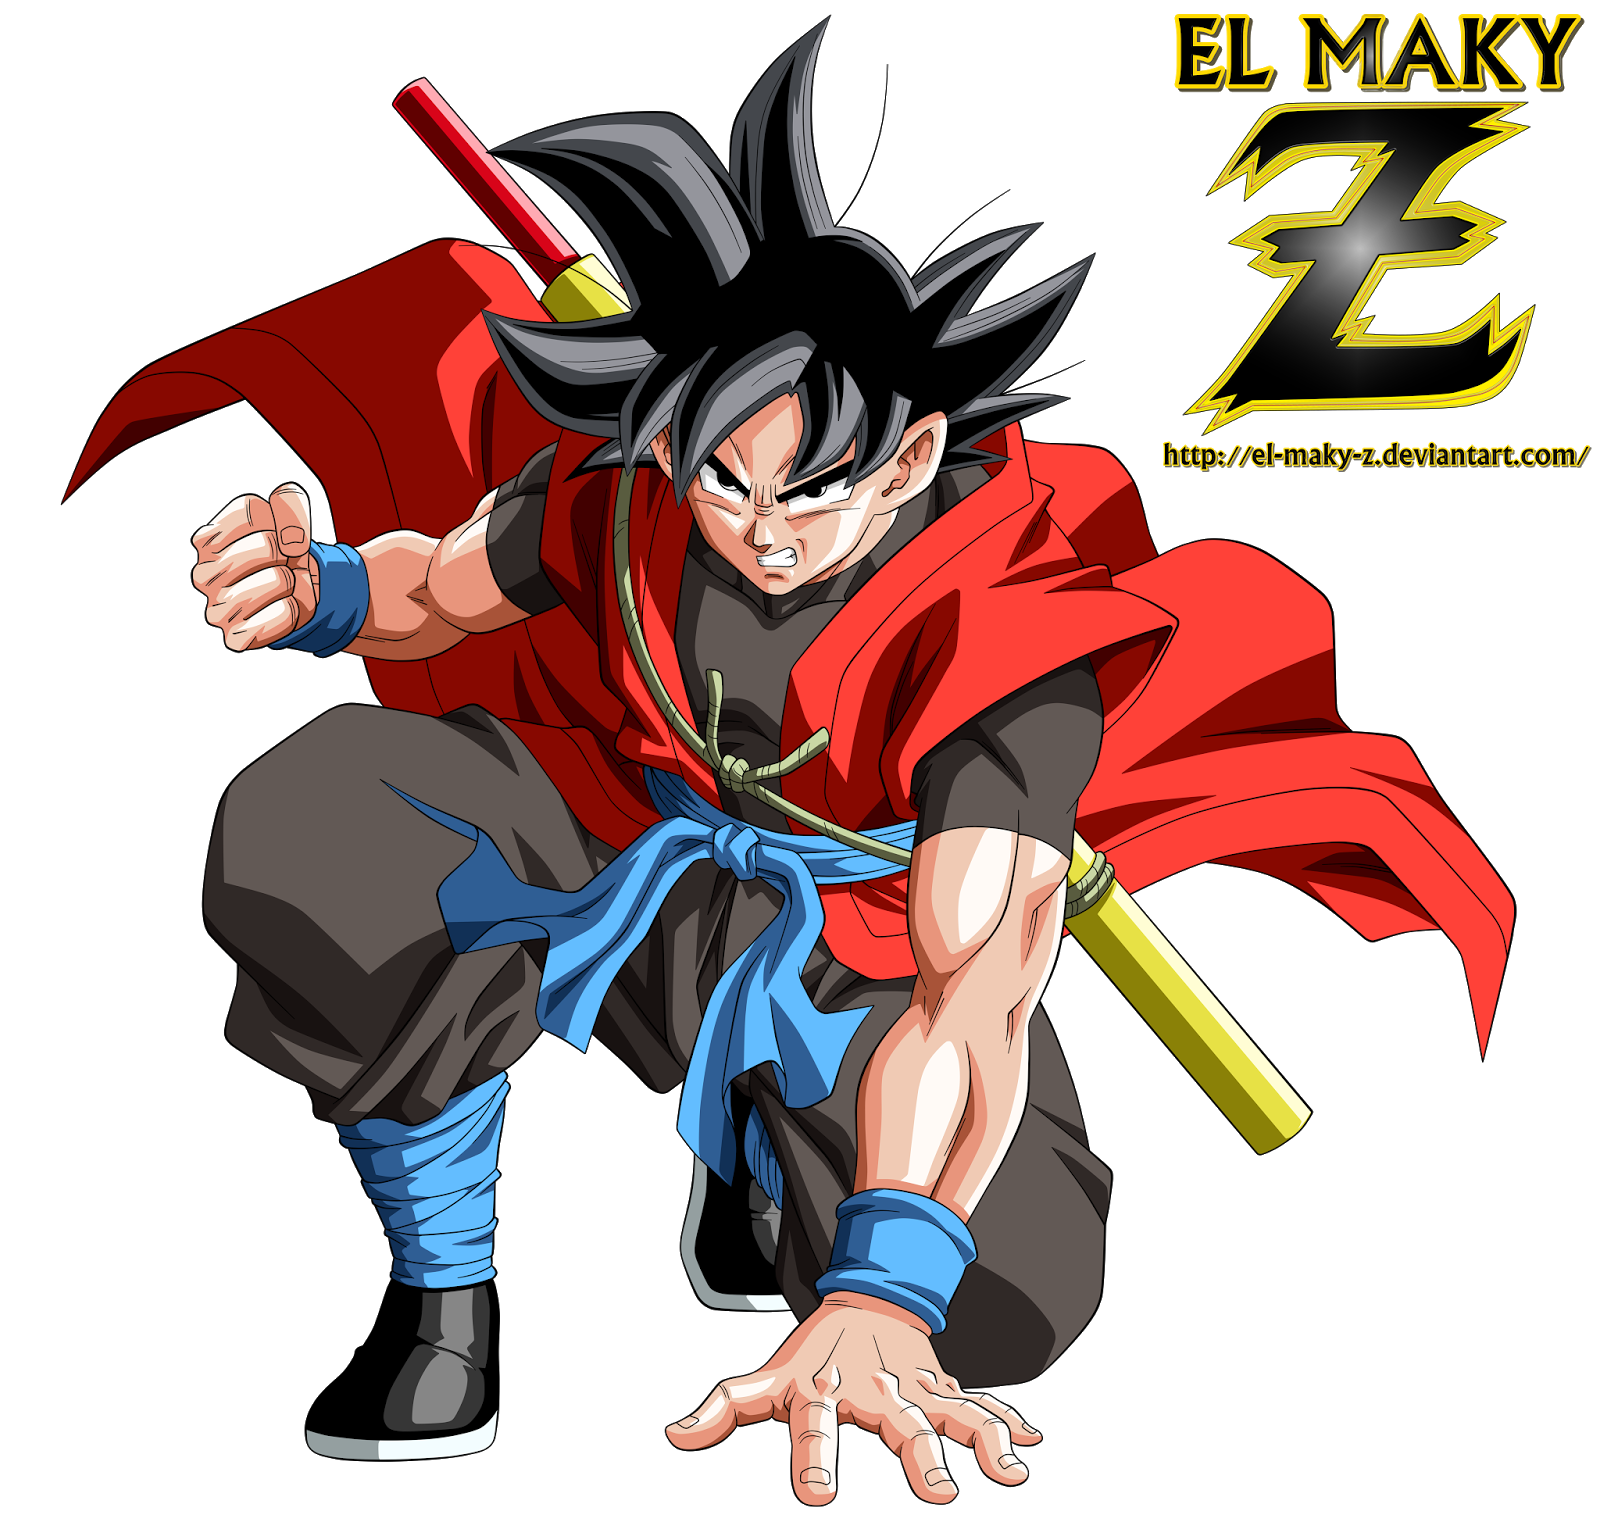 Dragon ball heroes cards png. Maky z blog card